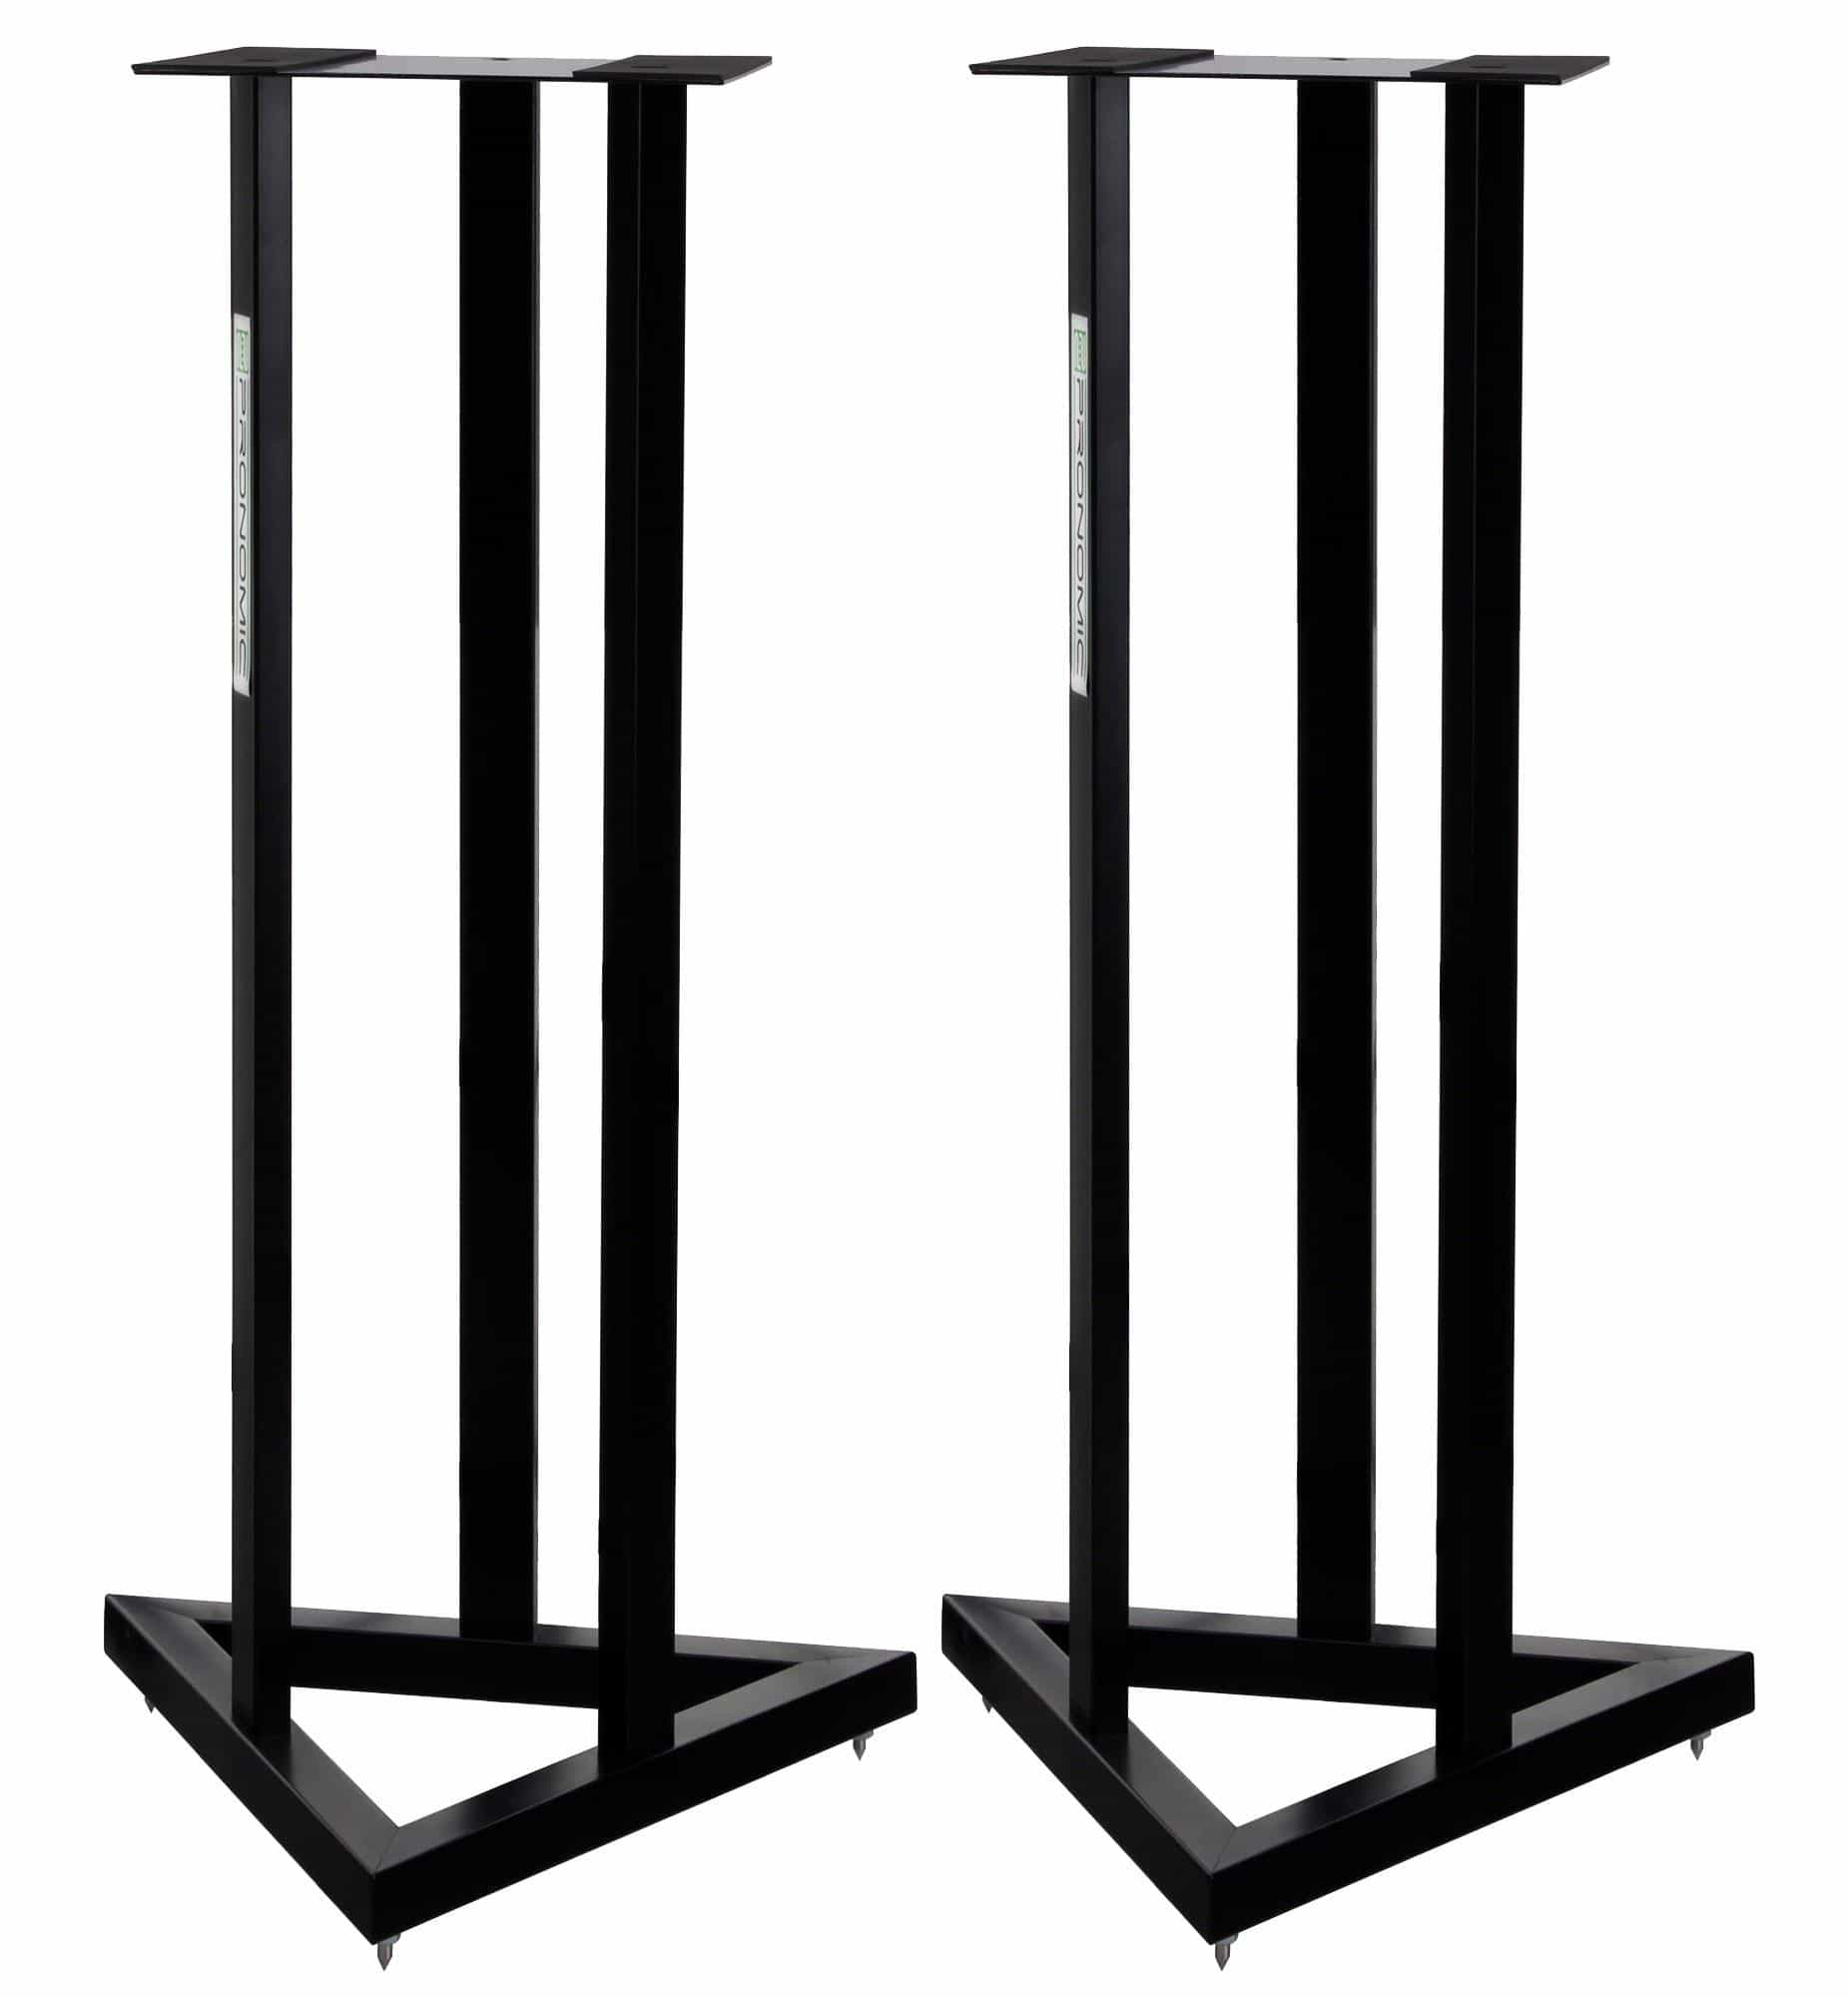 pronomic scs 20 speaker stand for studio monitor pair of stands kirstein music shop. Black Bedroom Furniture Sets. Home Design Ideas